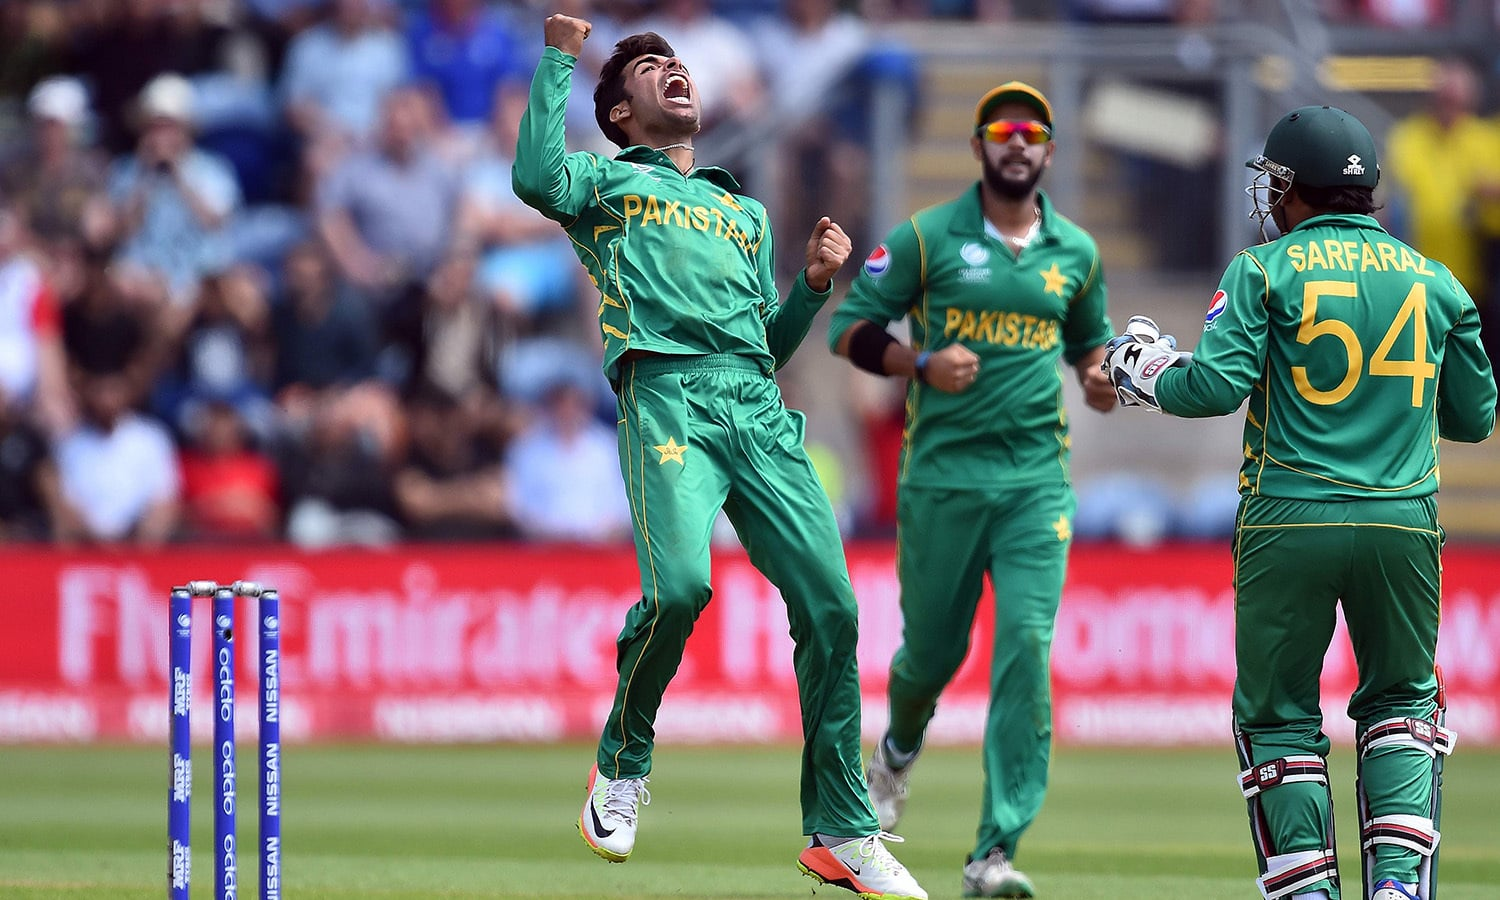 Shadab Khan (L) jumps in jubilation after taking the wicket of Joe Root (unseen) for 46 runs. ─ AFP/File